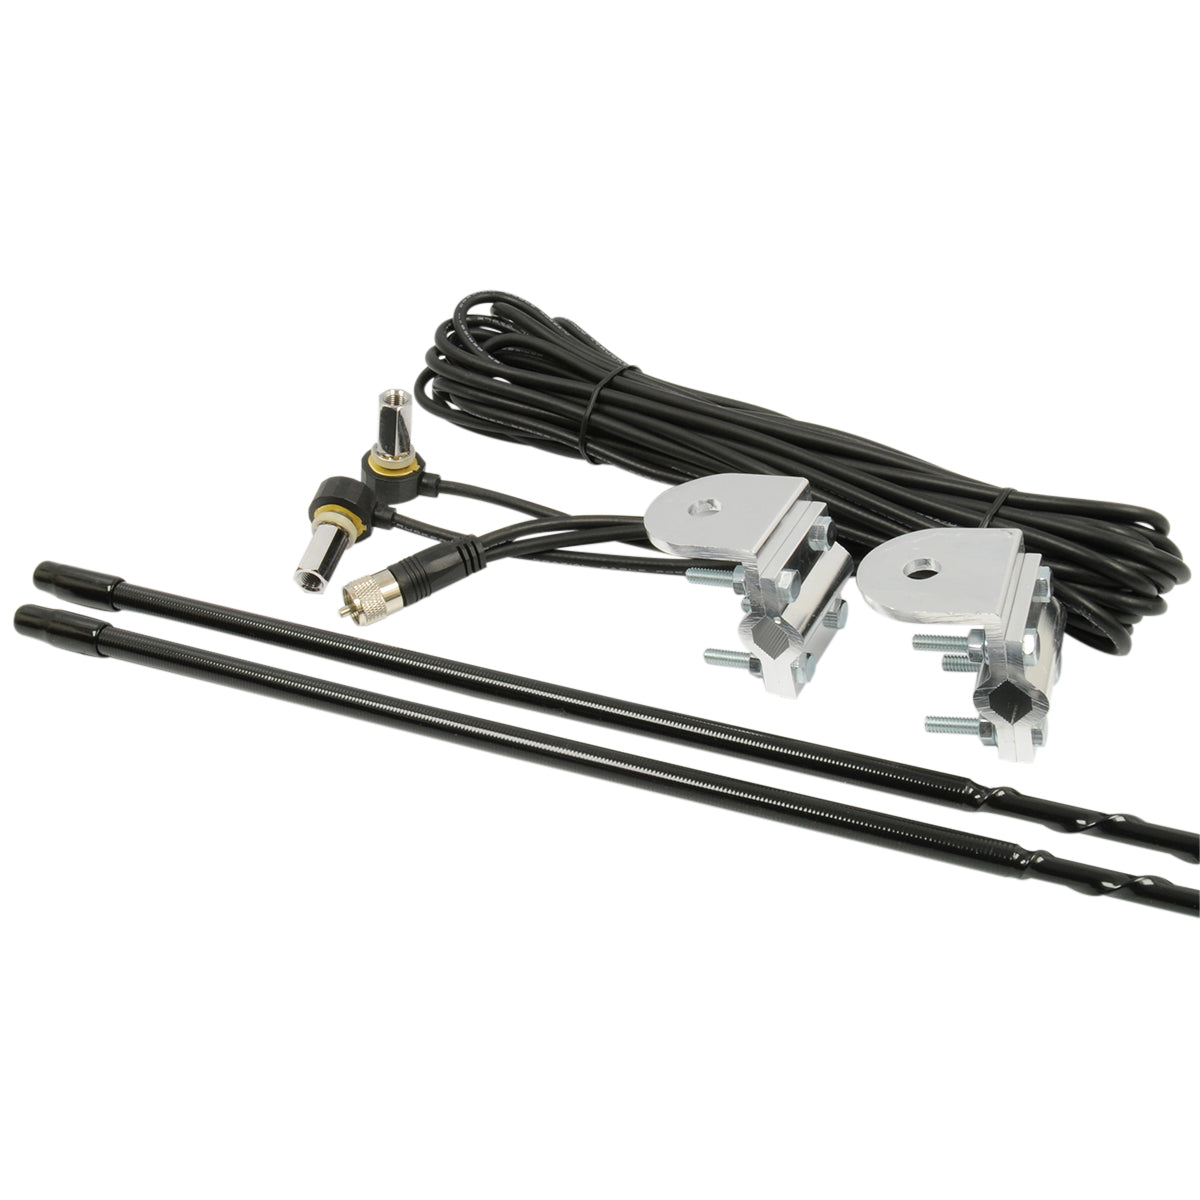 3' Platinum Series Dual Mirror Mount CB Antenna Kit, 1000W Black